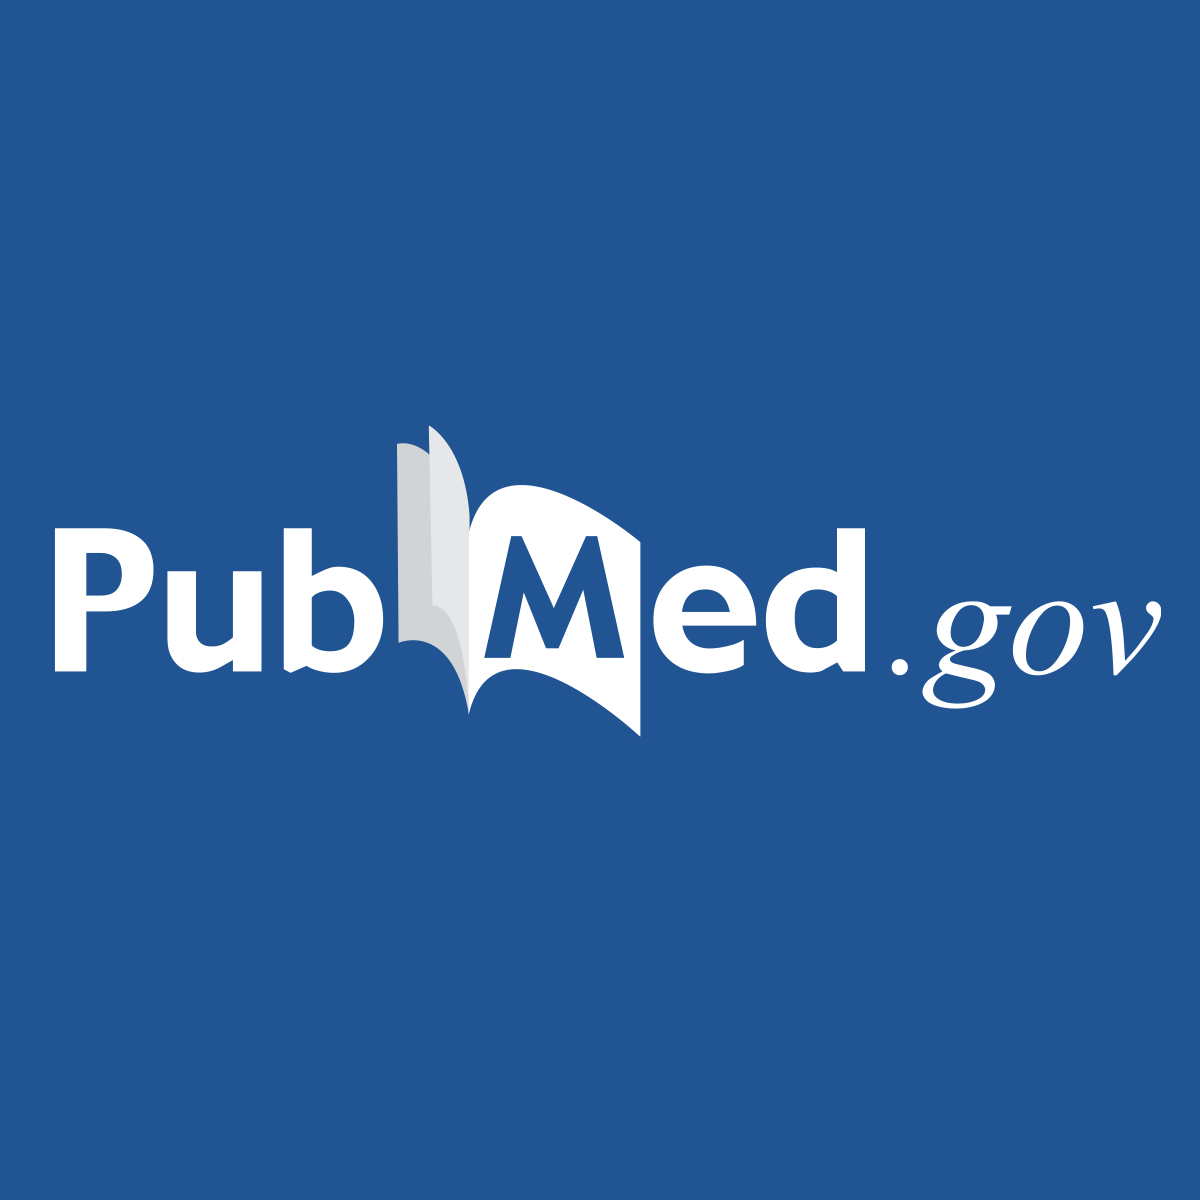 Antiinflammatory Therapy With Canakinumab for Atherosclerotic Disease